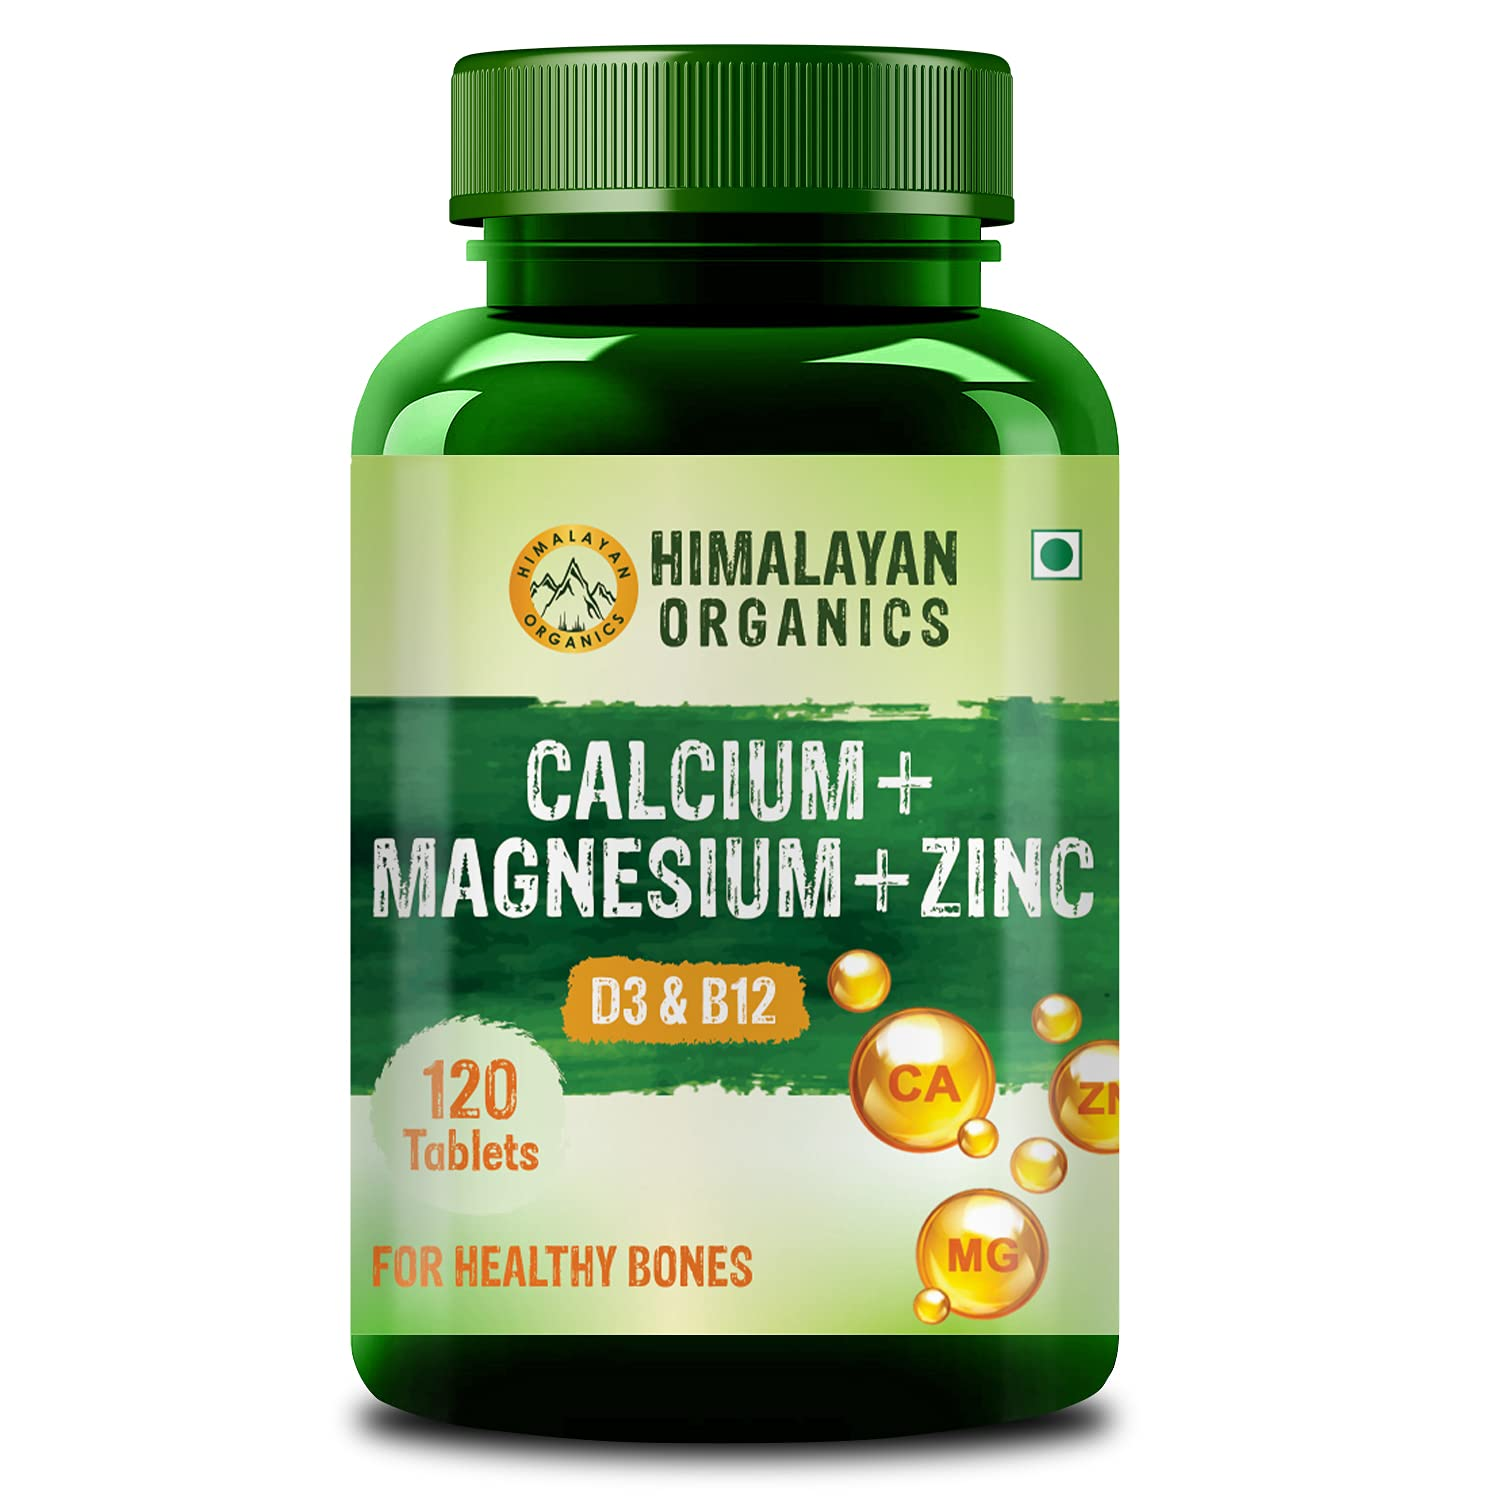 Himalayan Organics is the best calcium tablets for both men and women in India